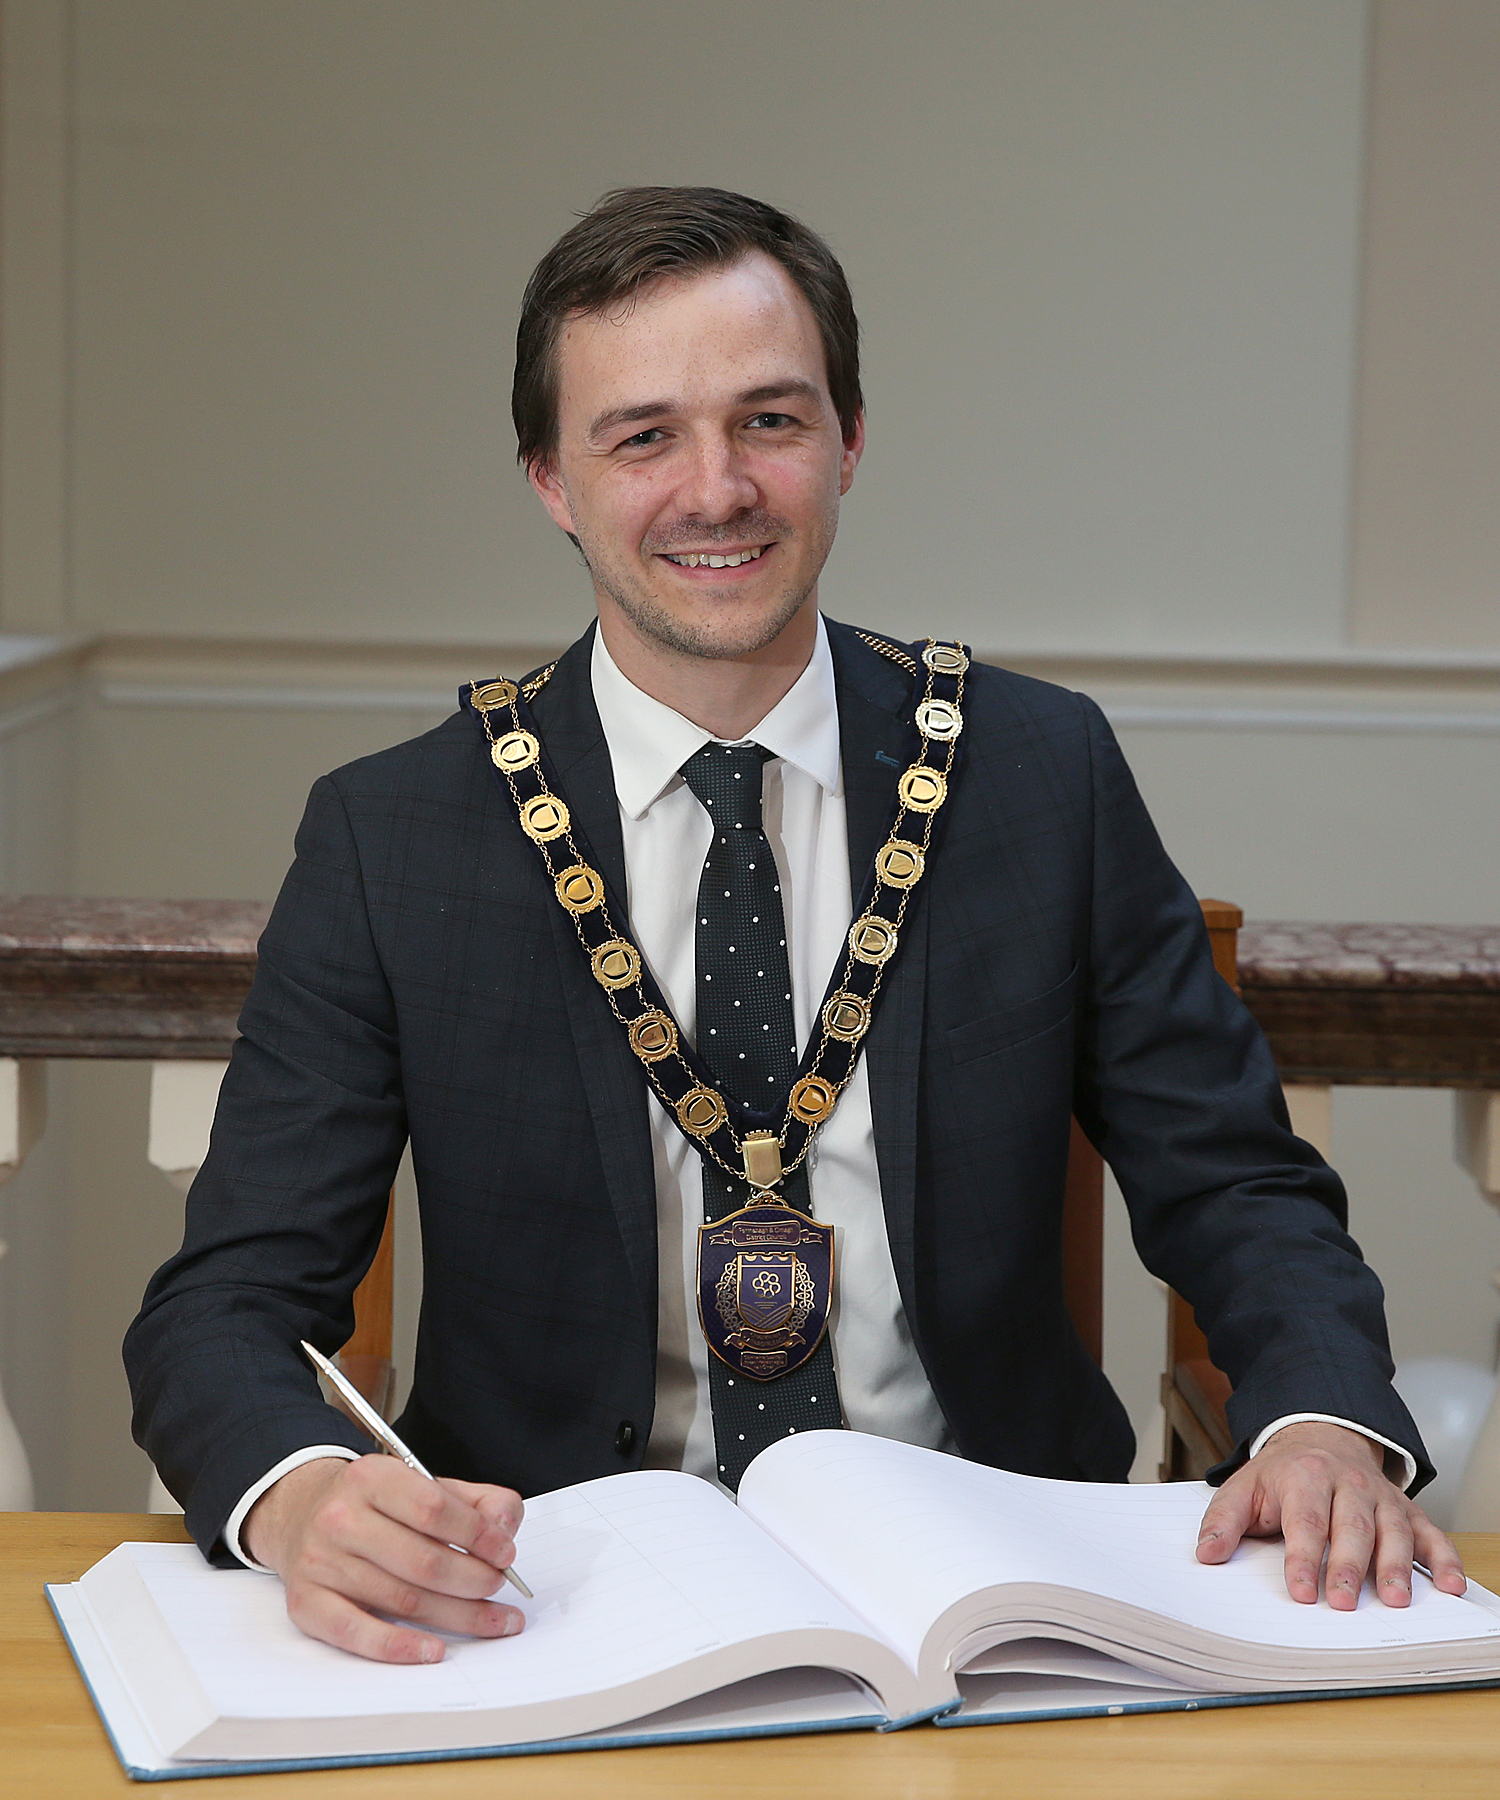 Chairman, Councillor Chris Smyth